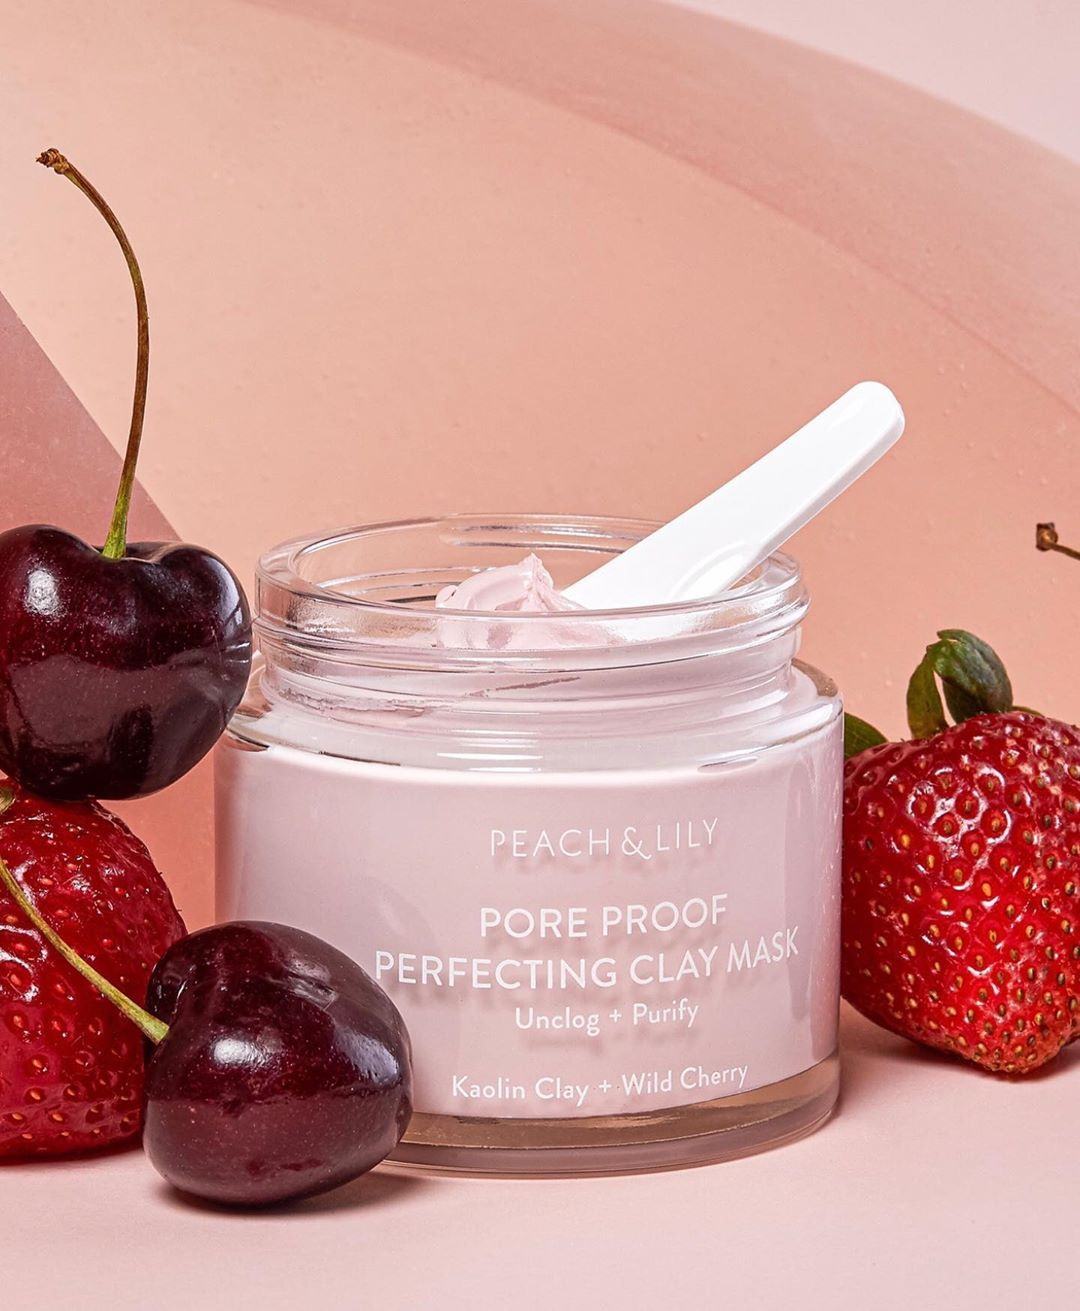 Peach & Lily Face Mask